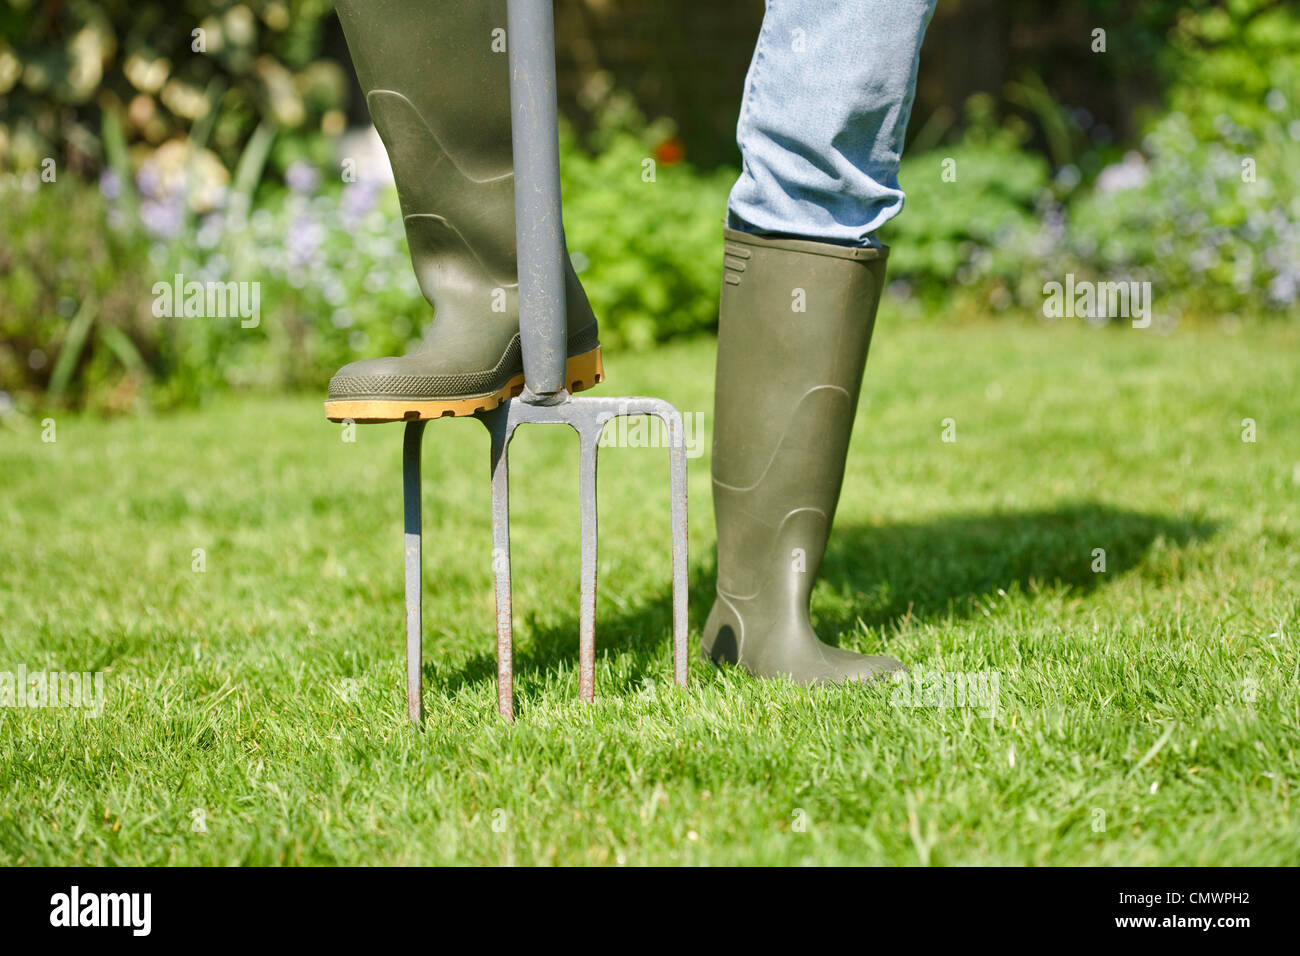 Woman aerating the garden lawn with a digging fork - Stock Image